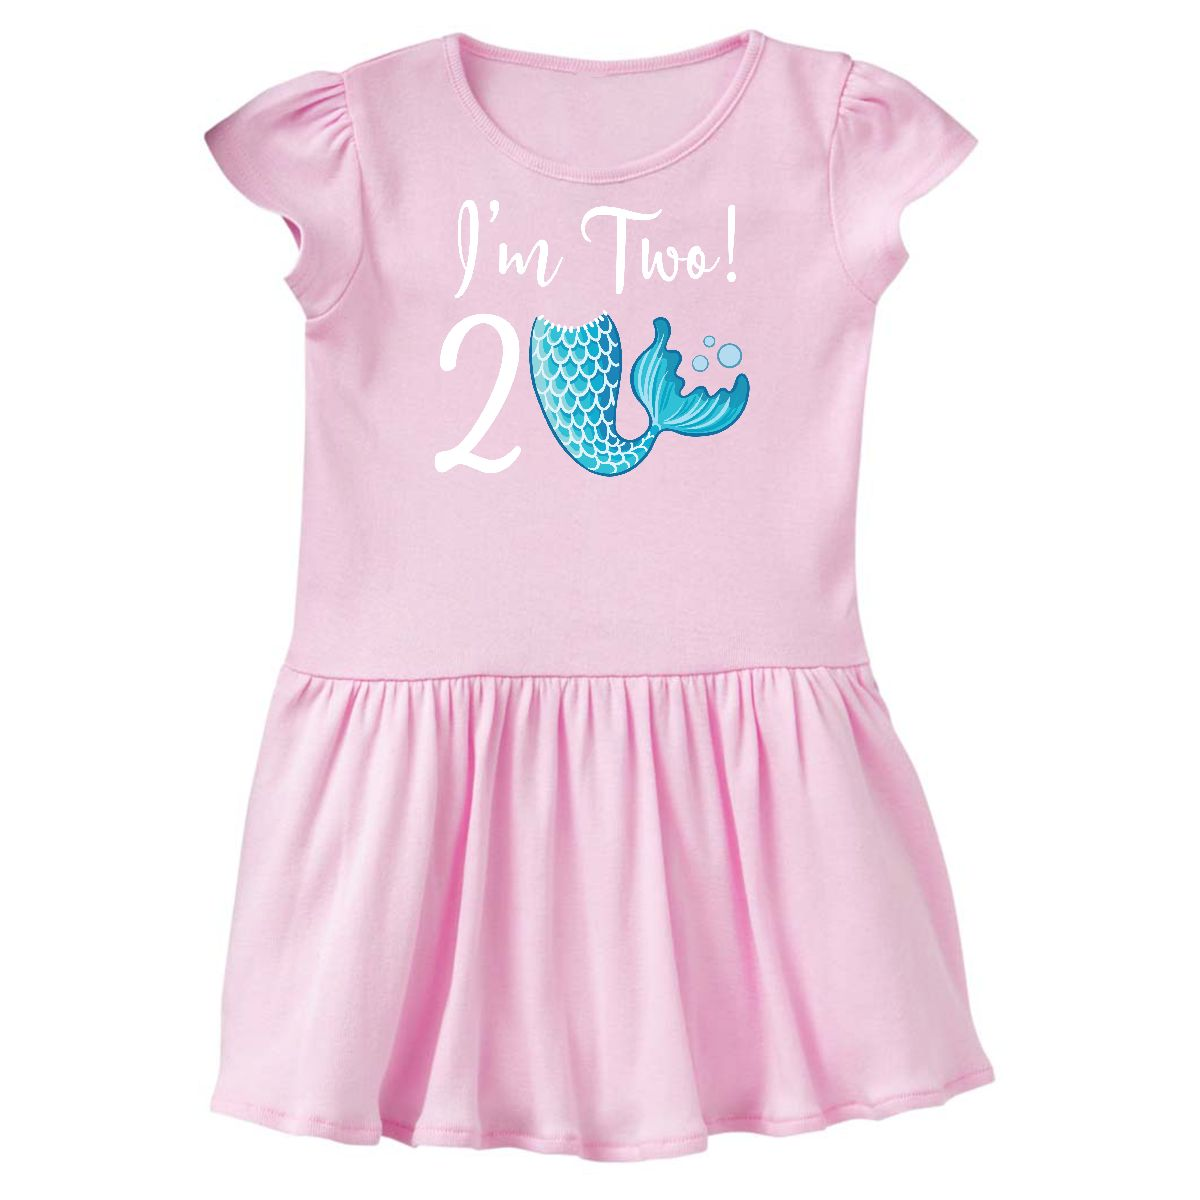 2nd Birthday Mermaid Party Toddler Dress Ballerina Pink 2T